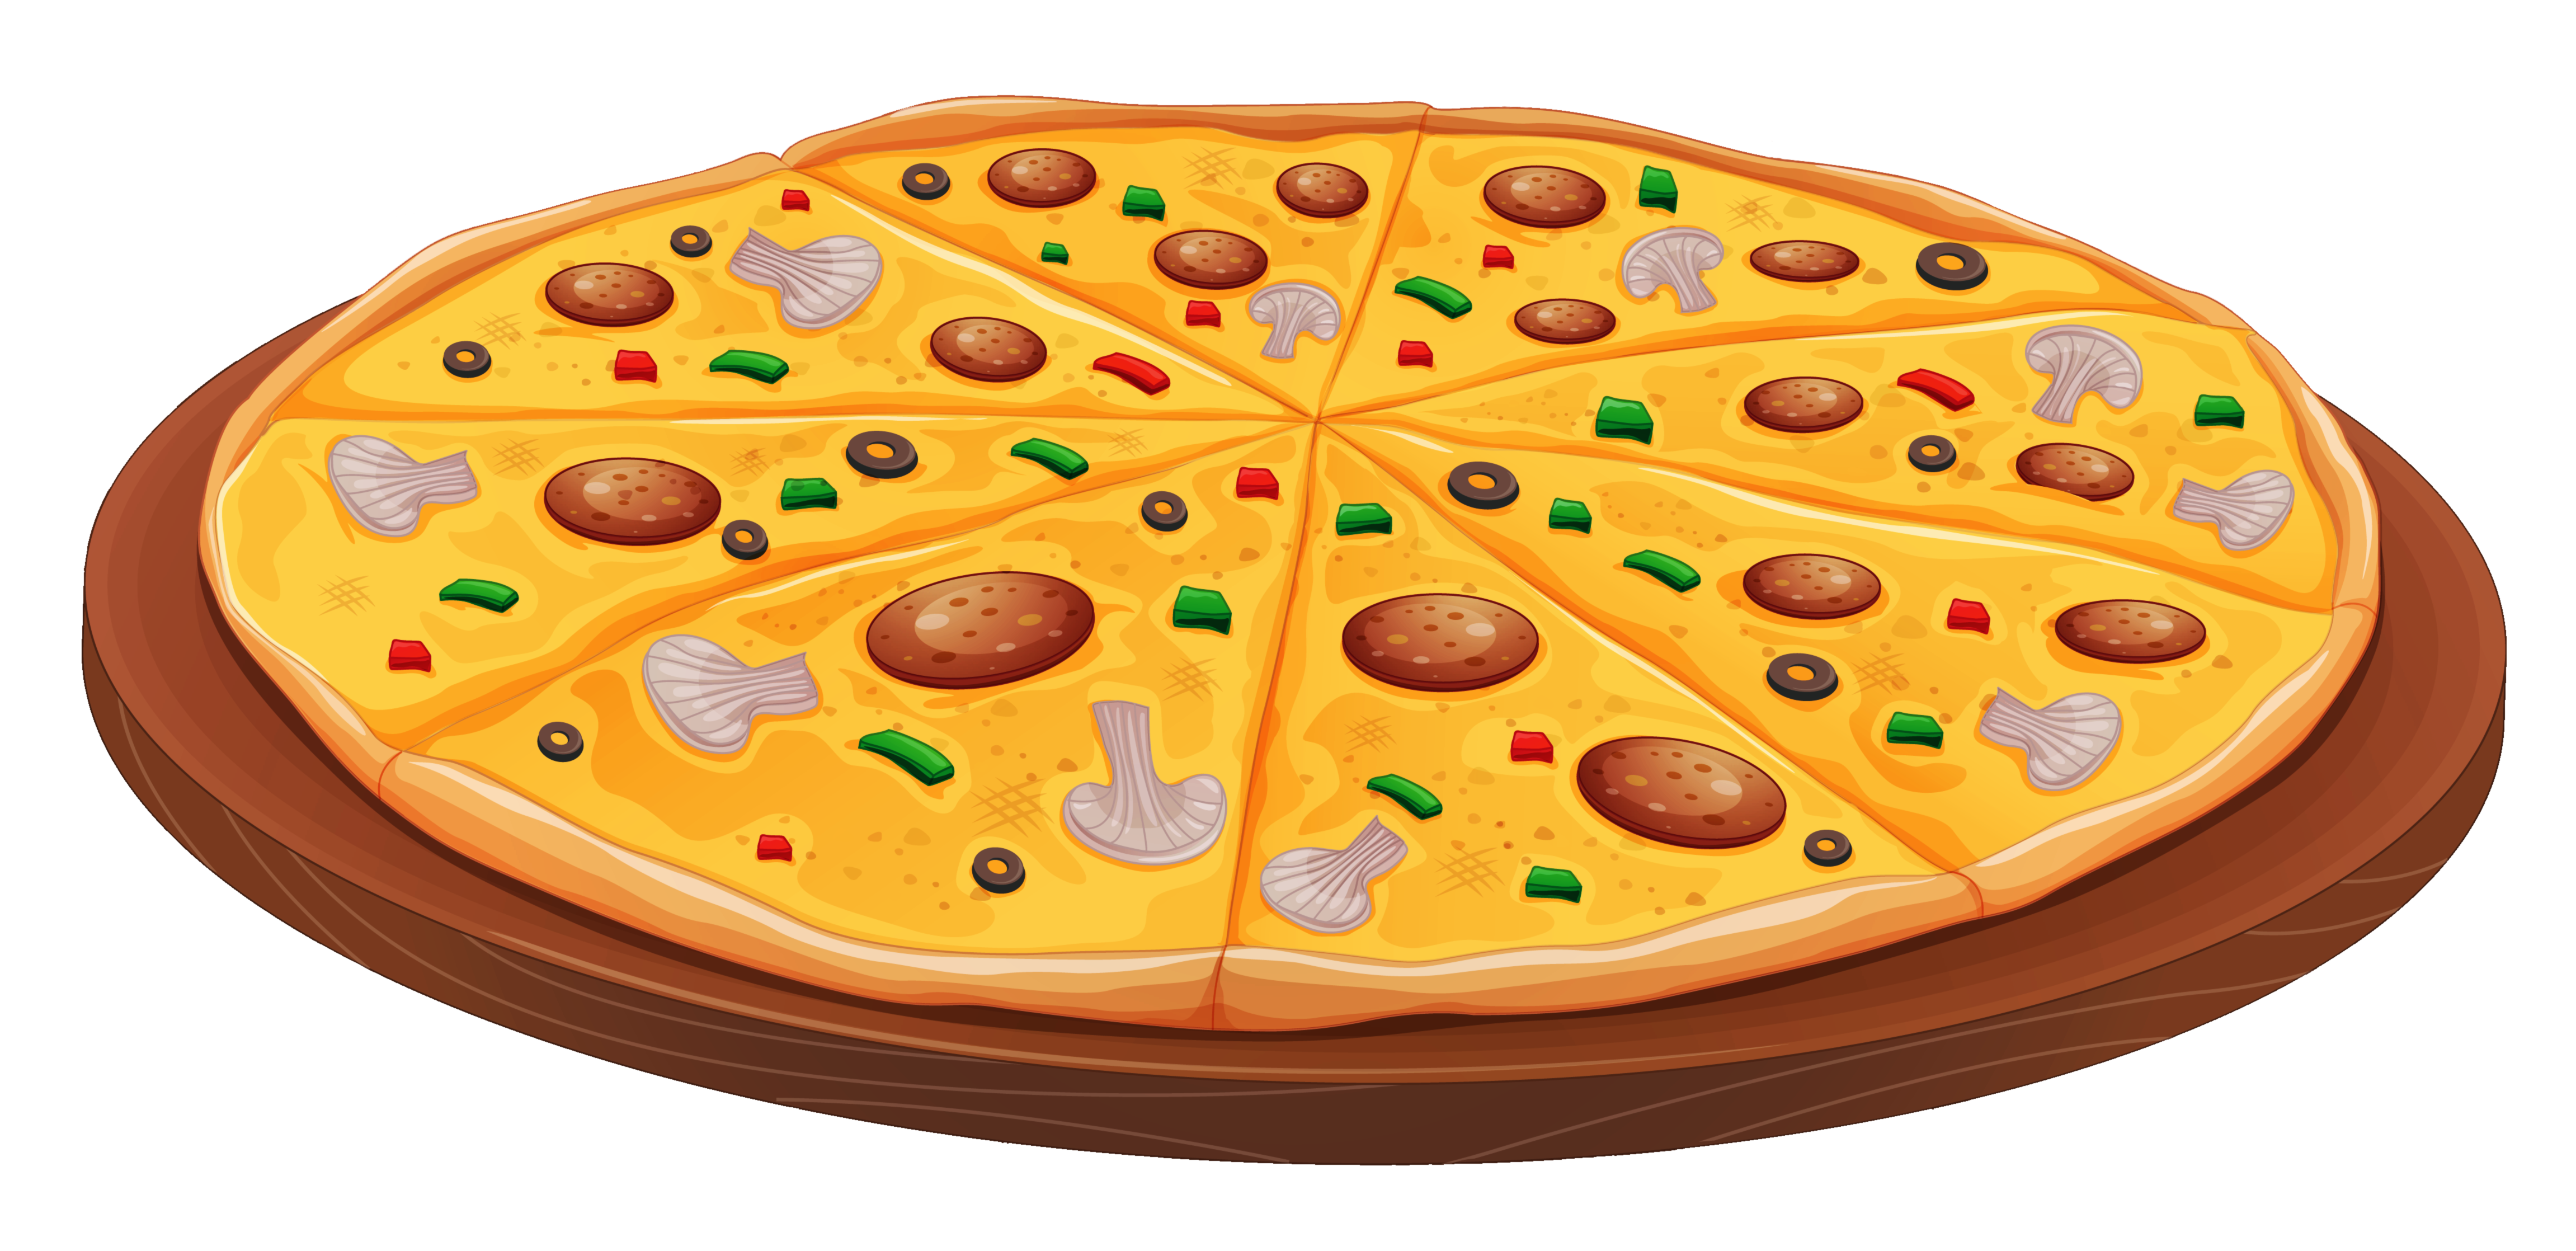 Pizza clip art free download clipart images 5